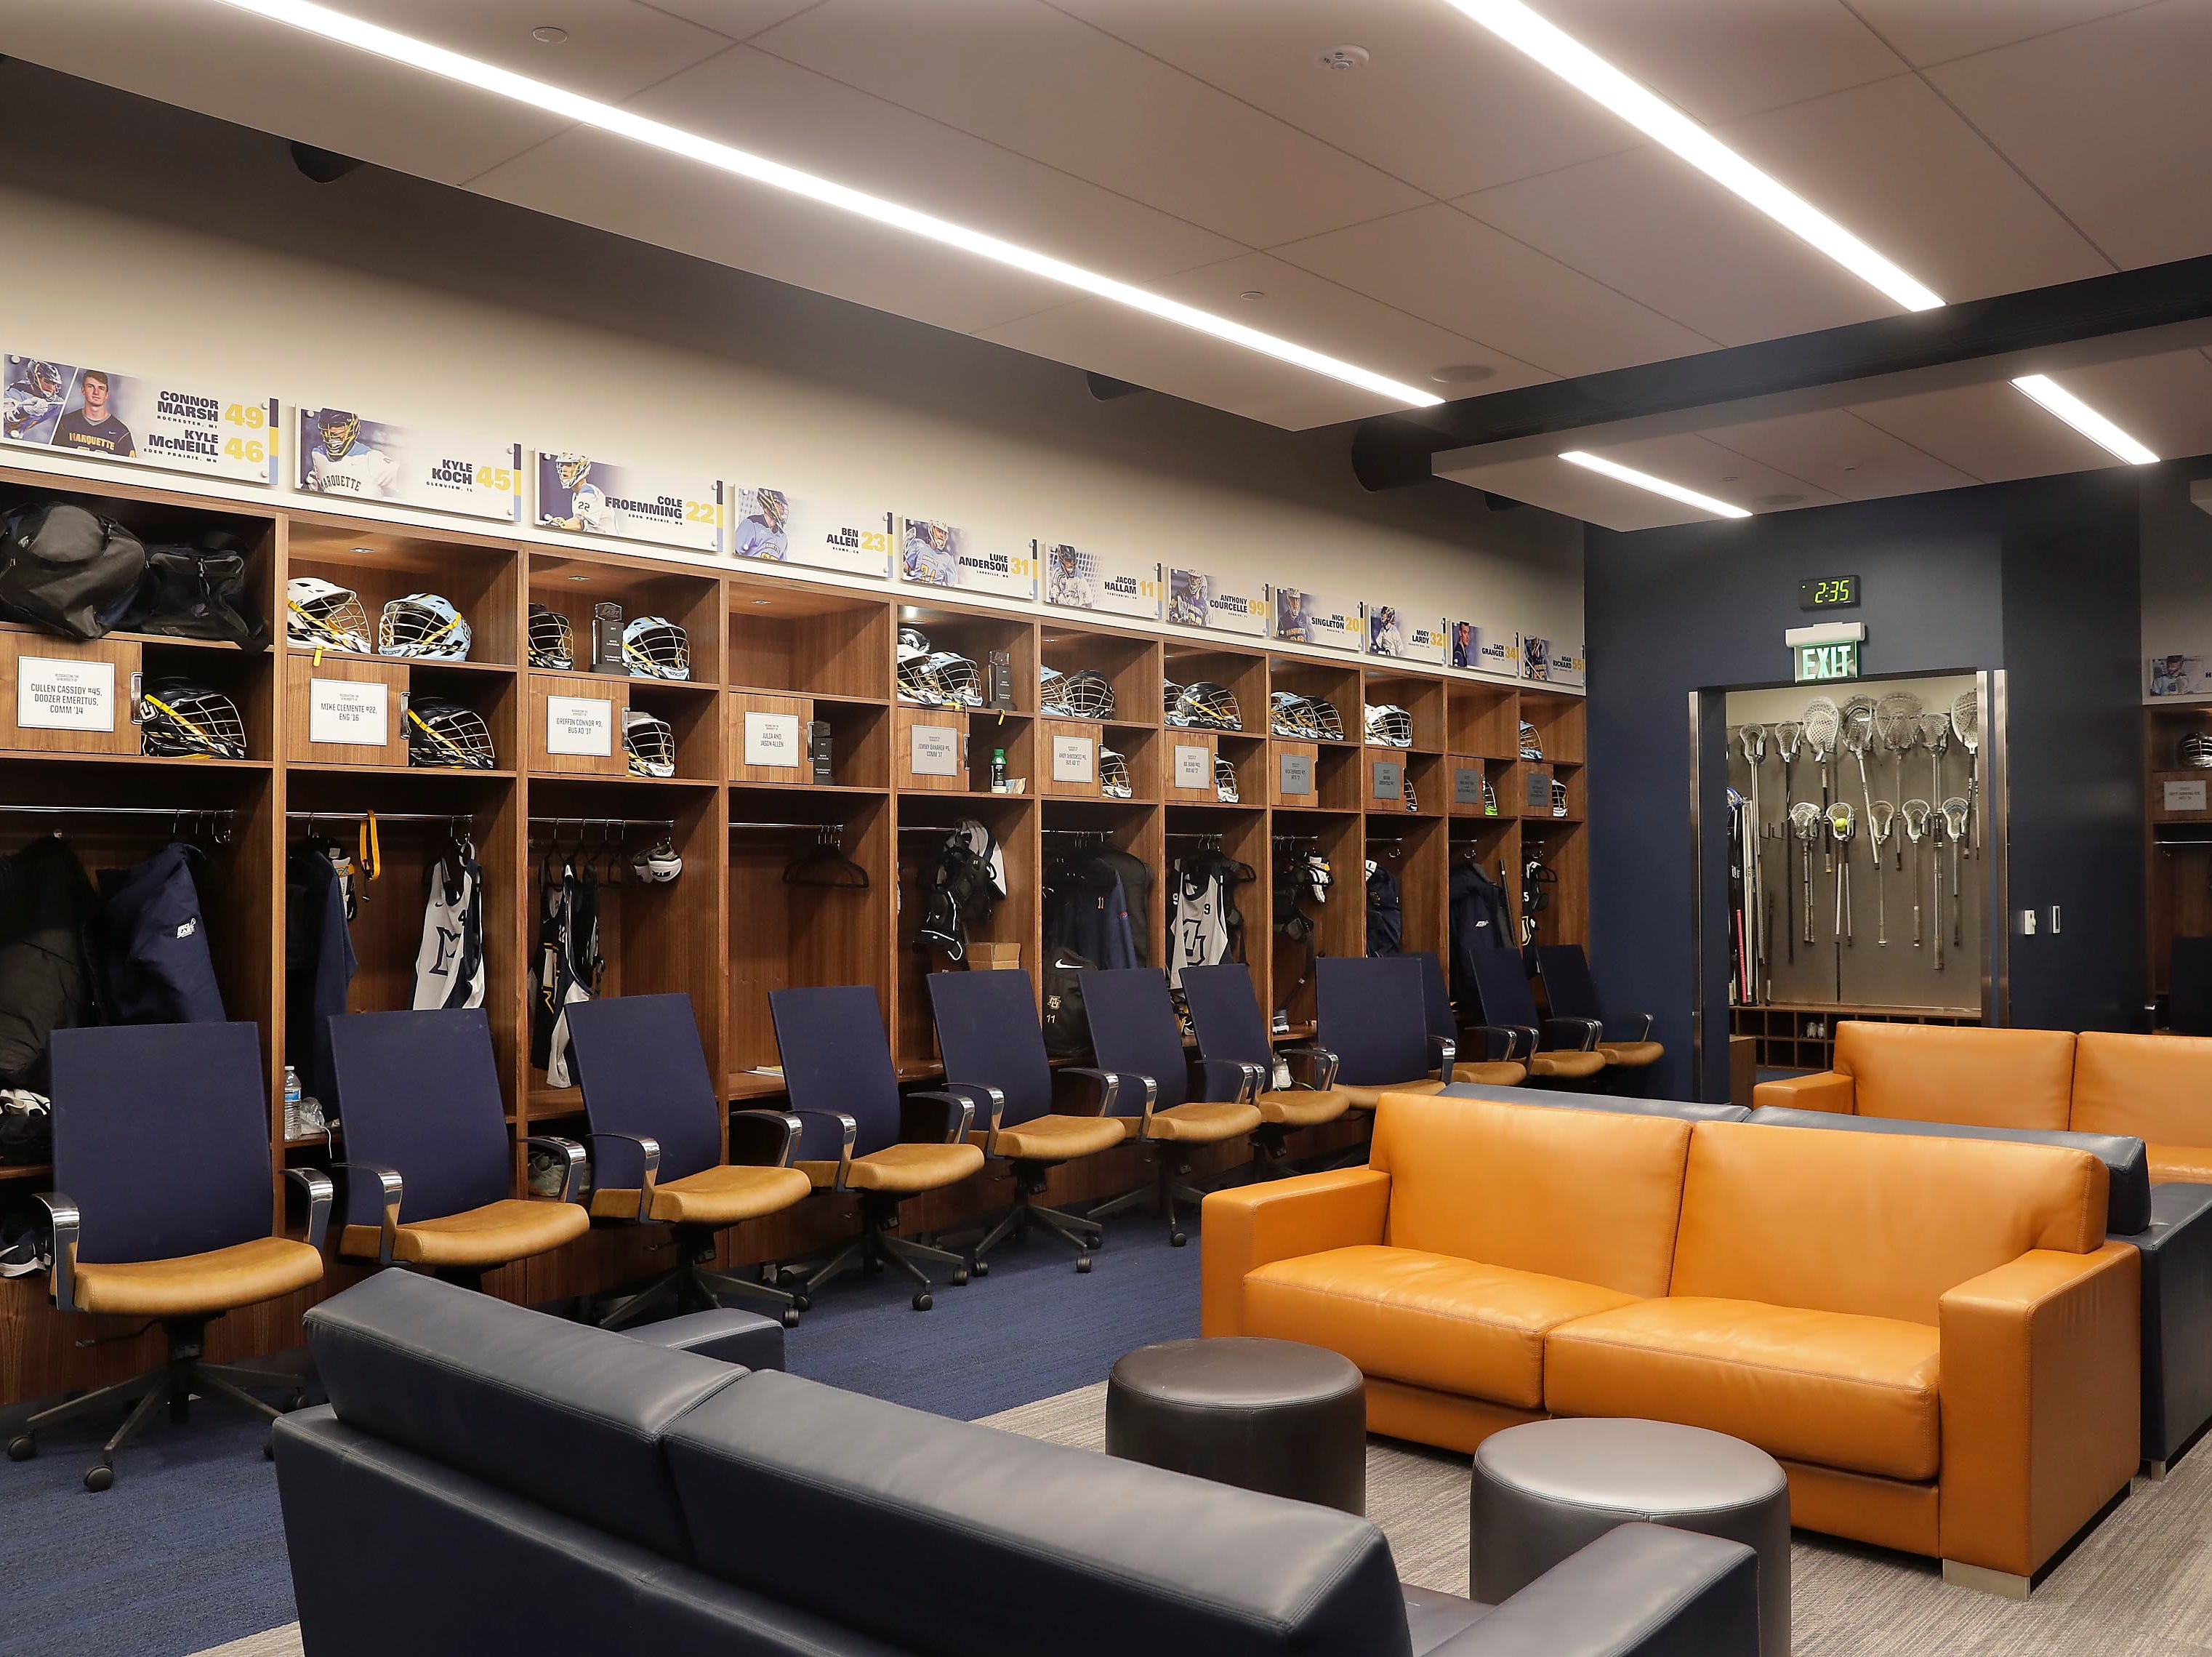 There are 103 lockers and support space for the lacrosse and golf programs.  Since their inception as NCAA programs six years ago, the men's and women's lacrosse teams and their 90-plus athletes have not had a locker rooms.